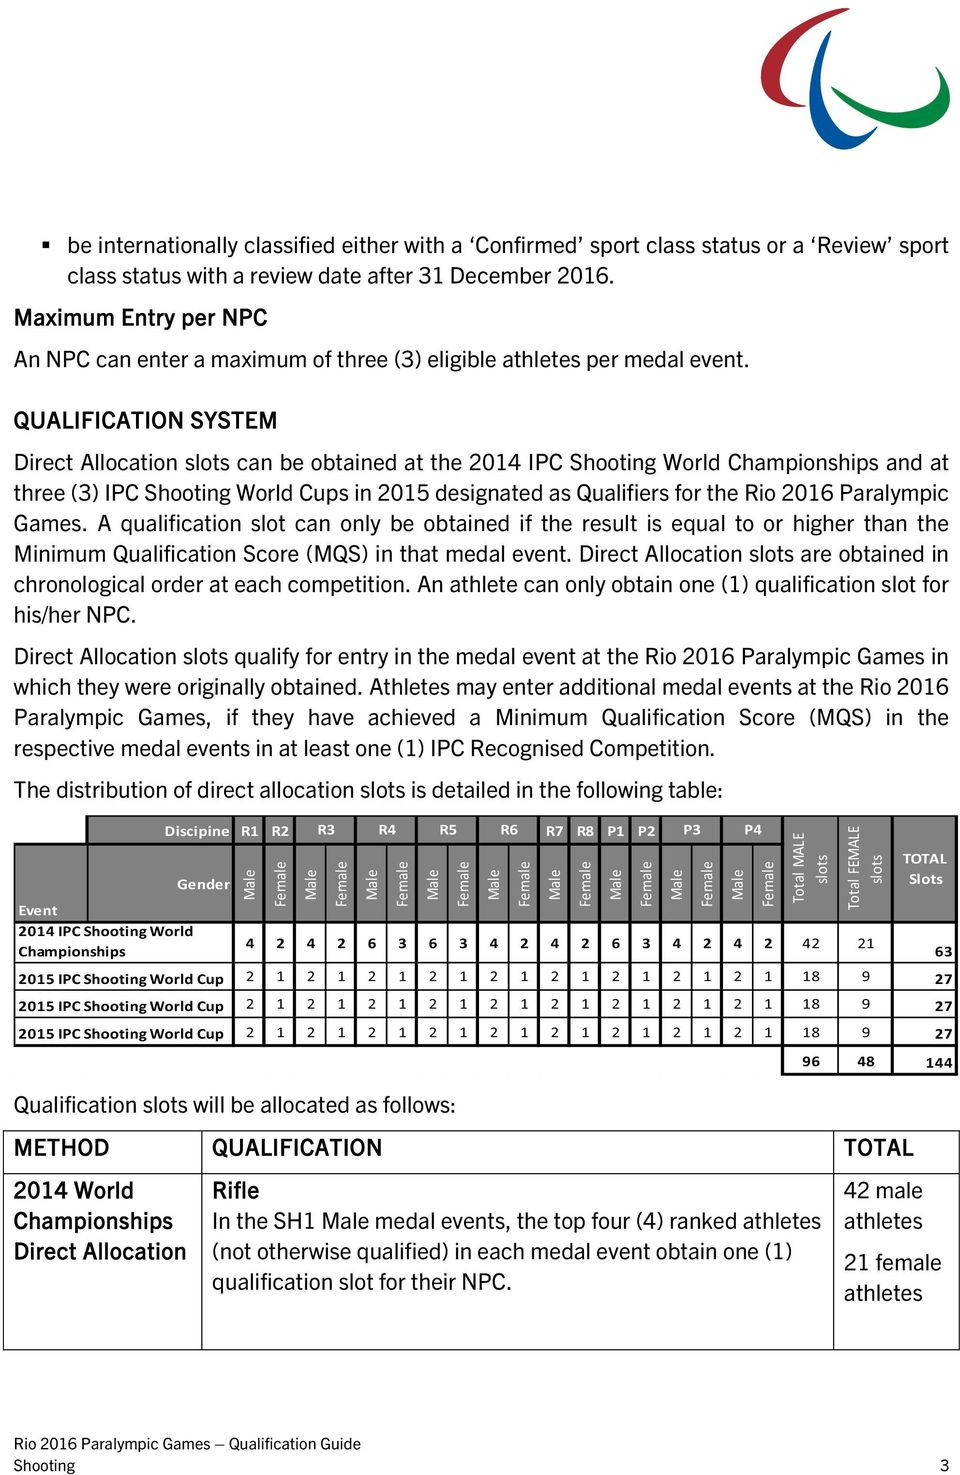 QUALIFICATION SYSTEM Direct Allocation slots can be obtained at the 2014 IPC Shooting World Championships and at three (3) IPC Shooting World Cups in 2015 designated as Qualifiers for the Rio 2016